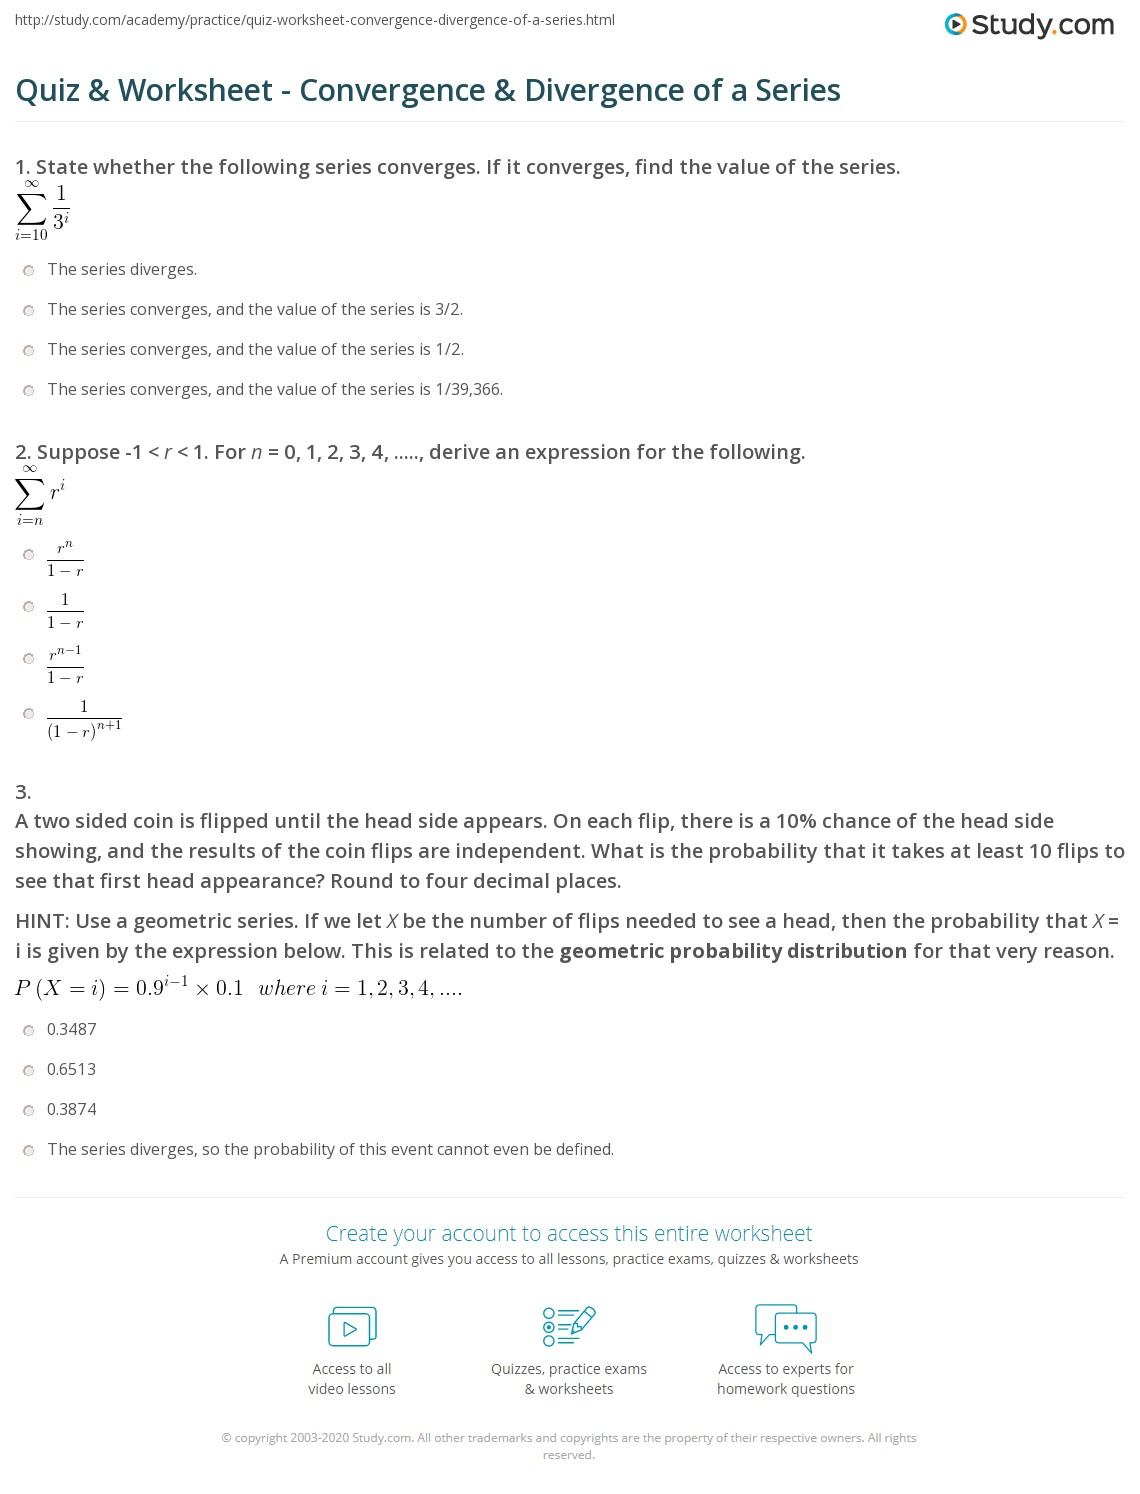 Quiz & Worksheet - Convergence & Divergence of a Series